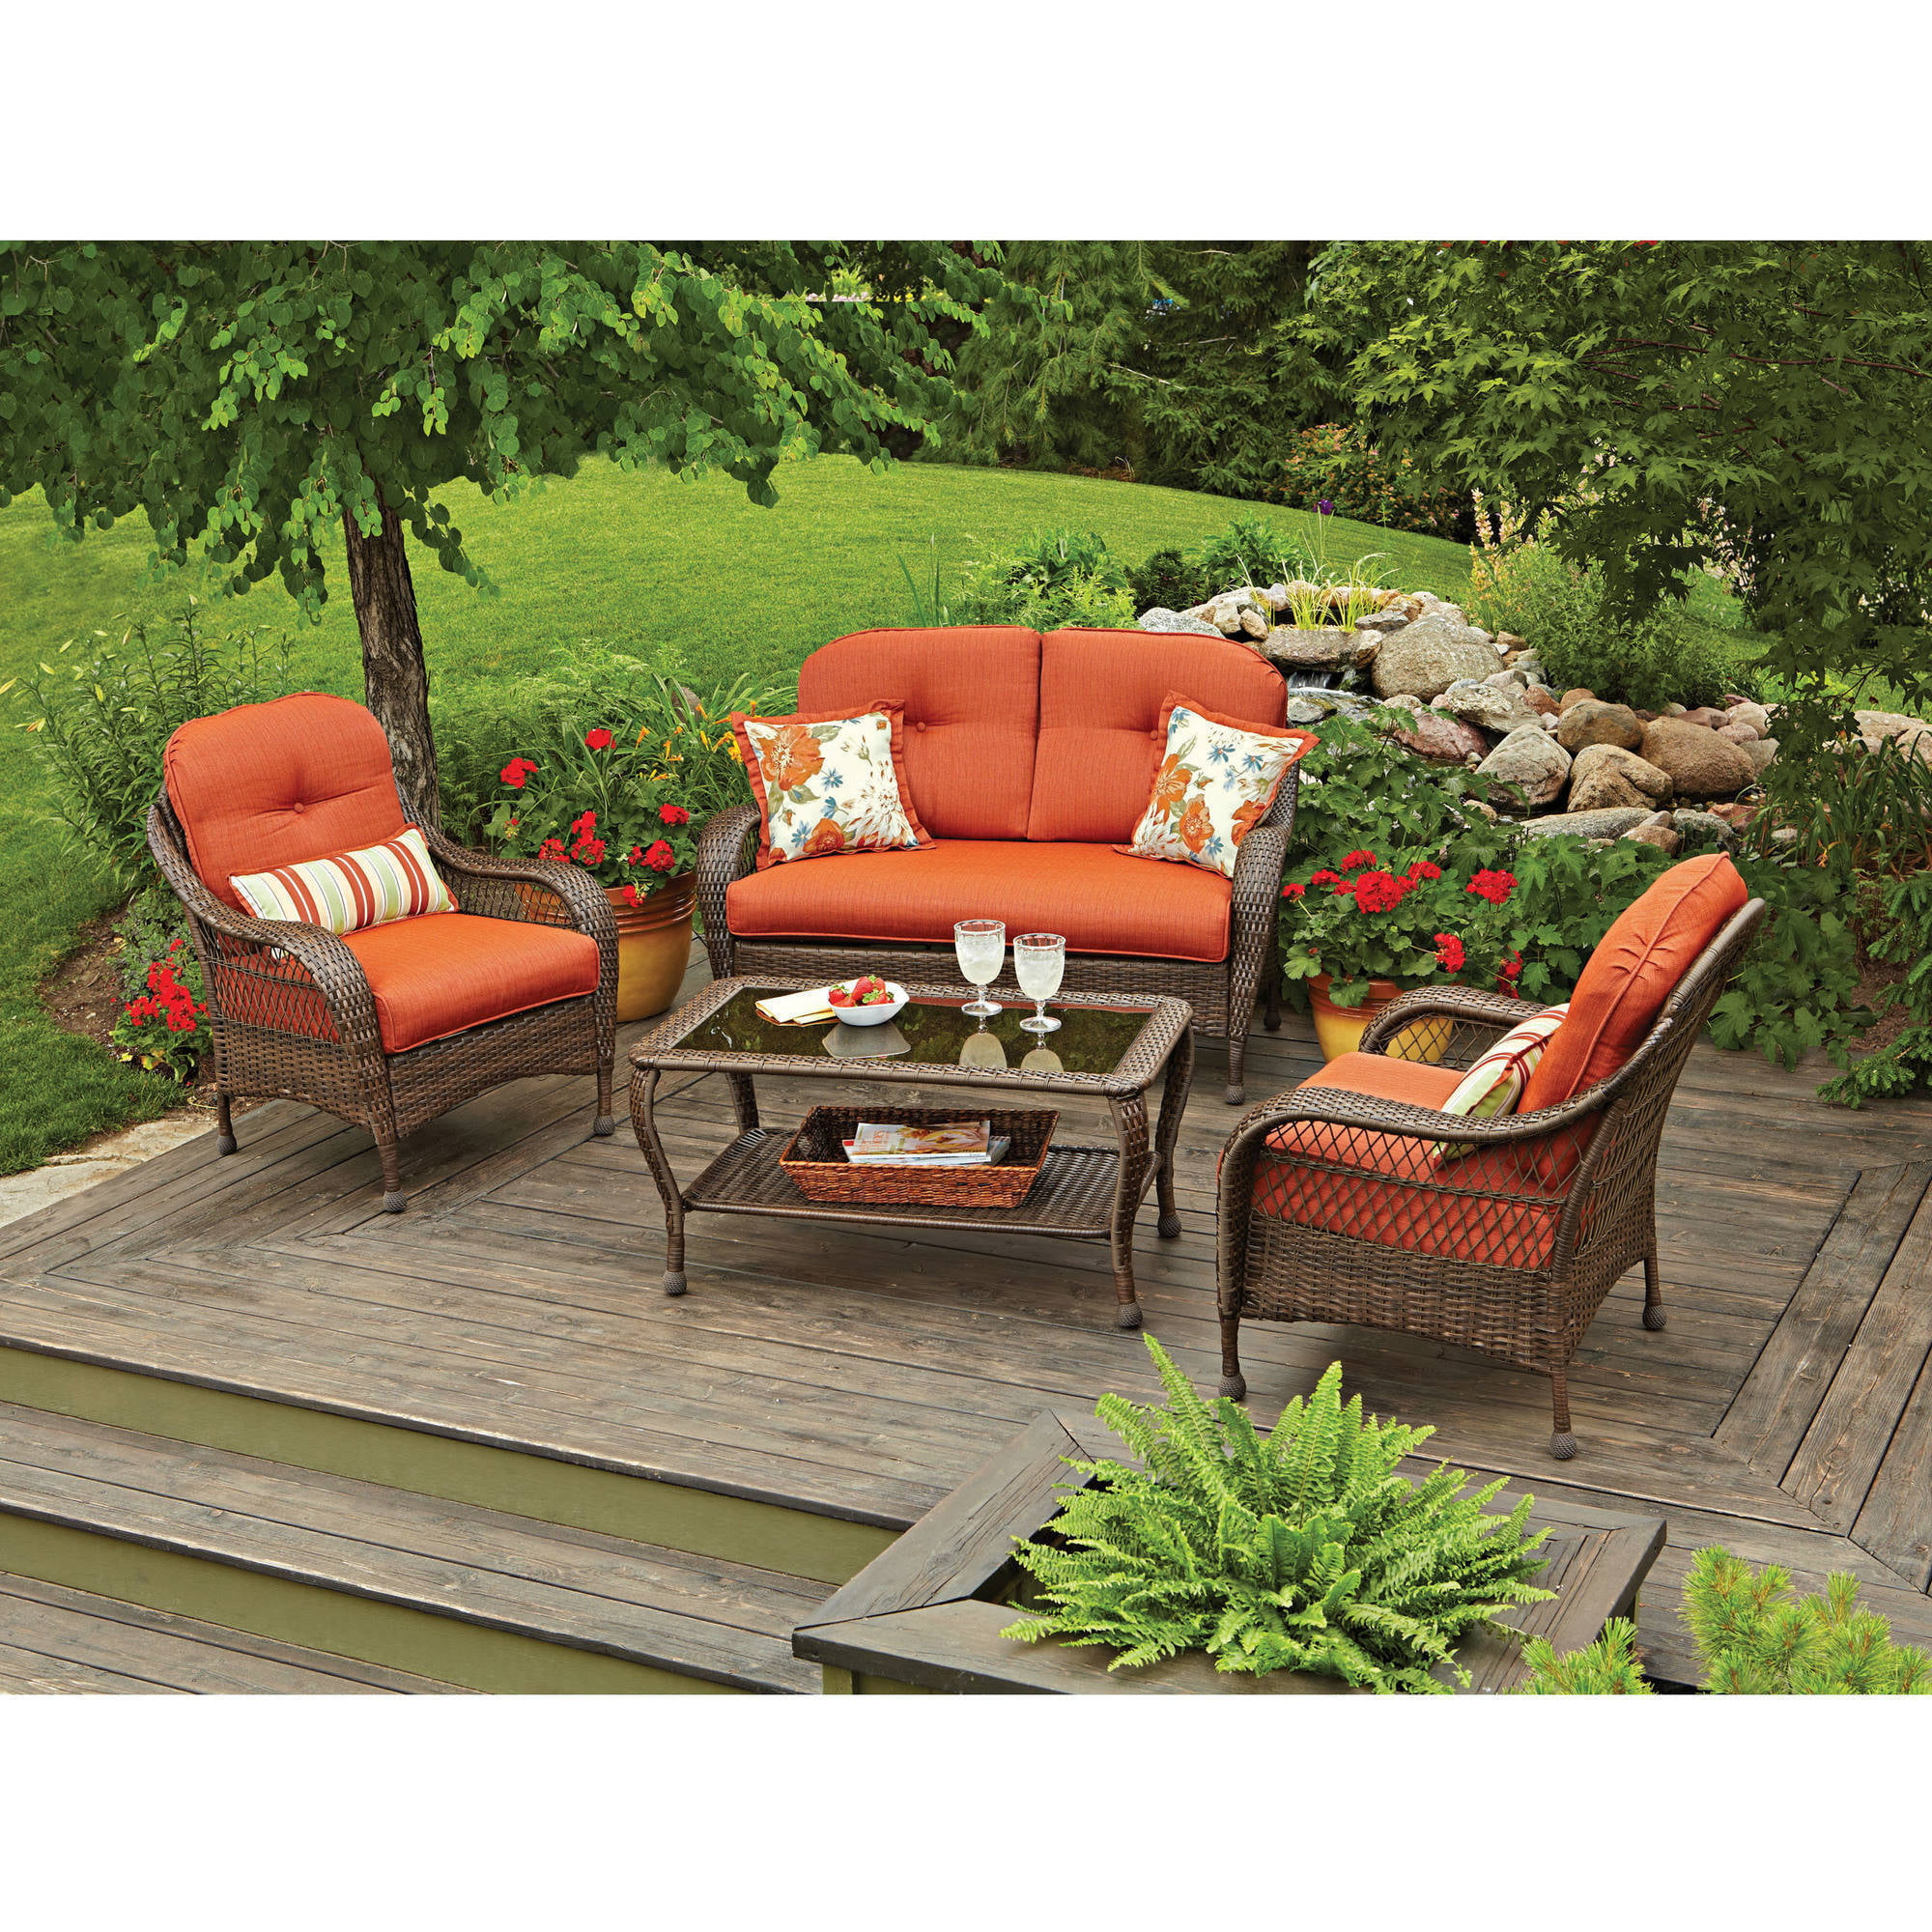 Better Homes And Gardens Azalea Ridge Outdoor Conversation Set   Walmart.com